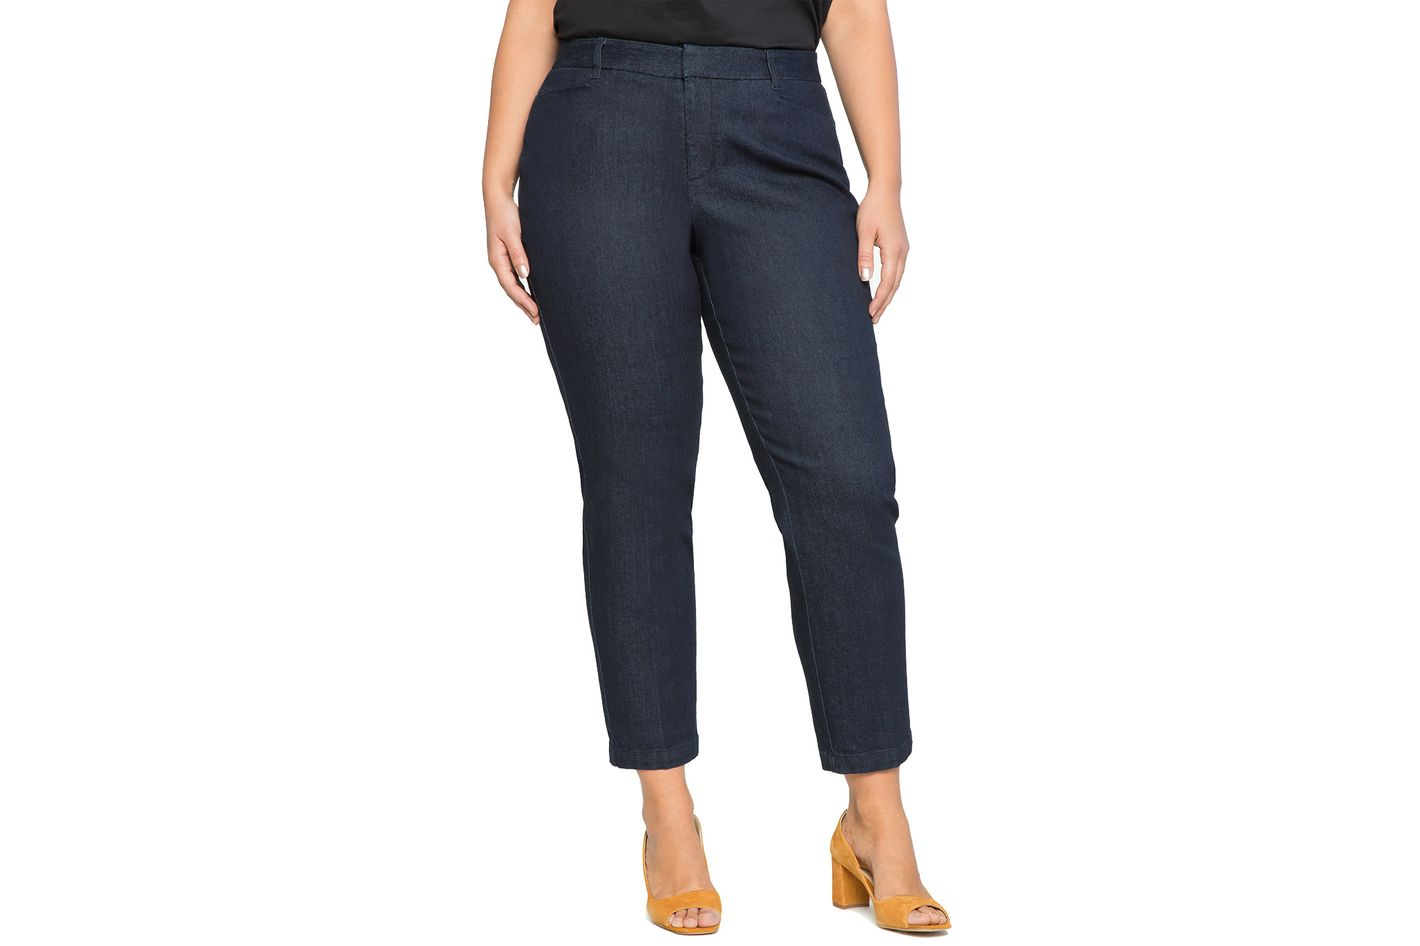 Kady Fit Denim Pant